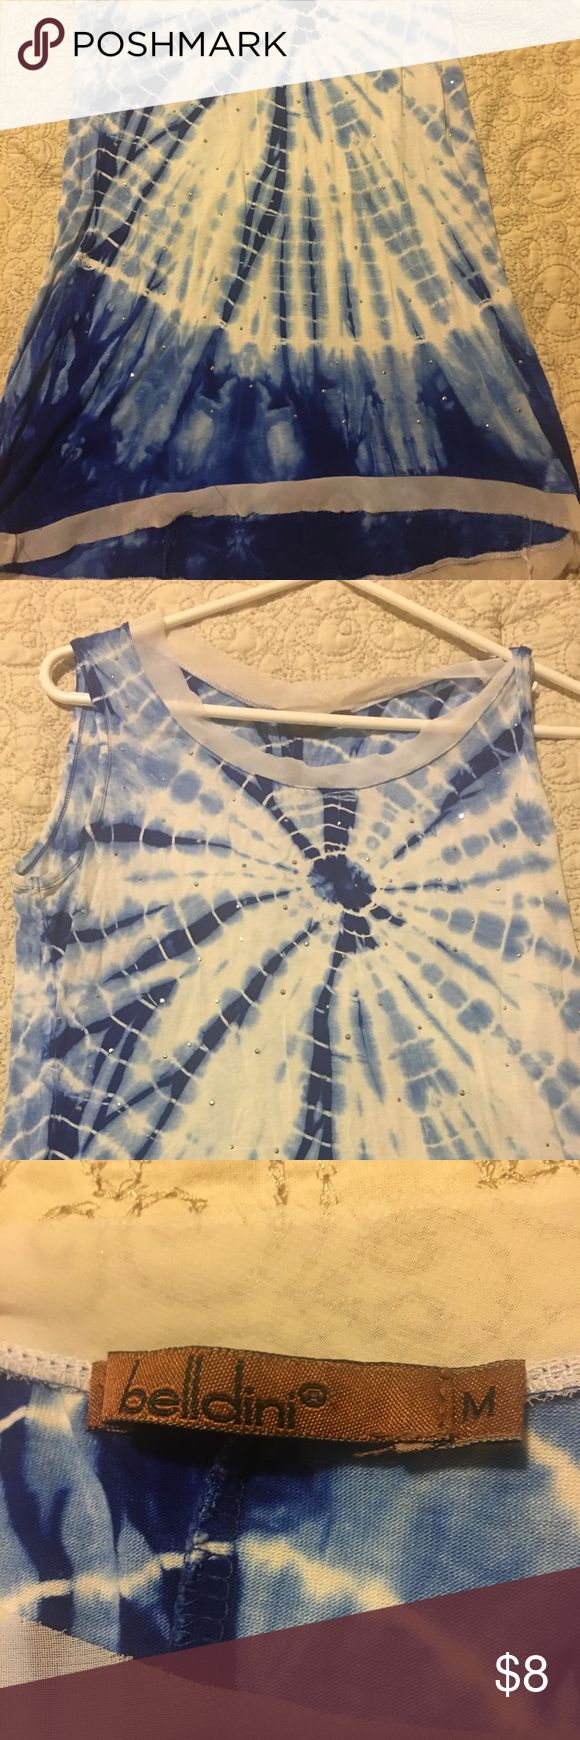 Belldini long tank top size M Belldini size M tank top, soft material with sheer material at the top around the neckline and all around the bottom of the shirt. The sheer material is imperfect (see pics) but is supposed to be like that.  Shirt is like new. Belldini Tops Tank Tops